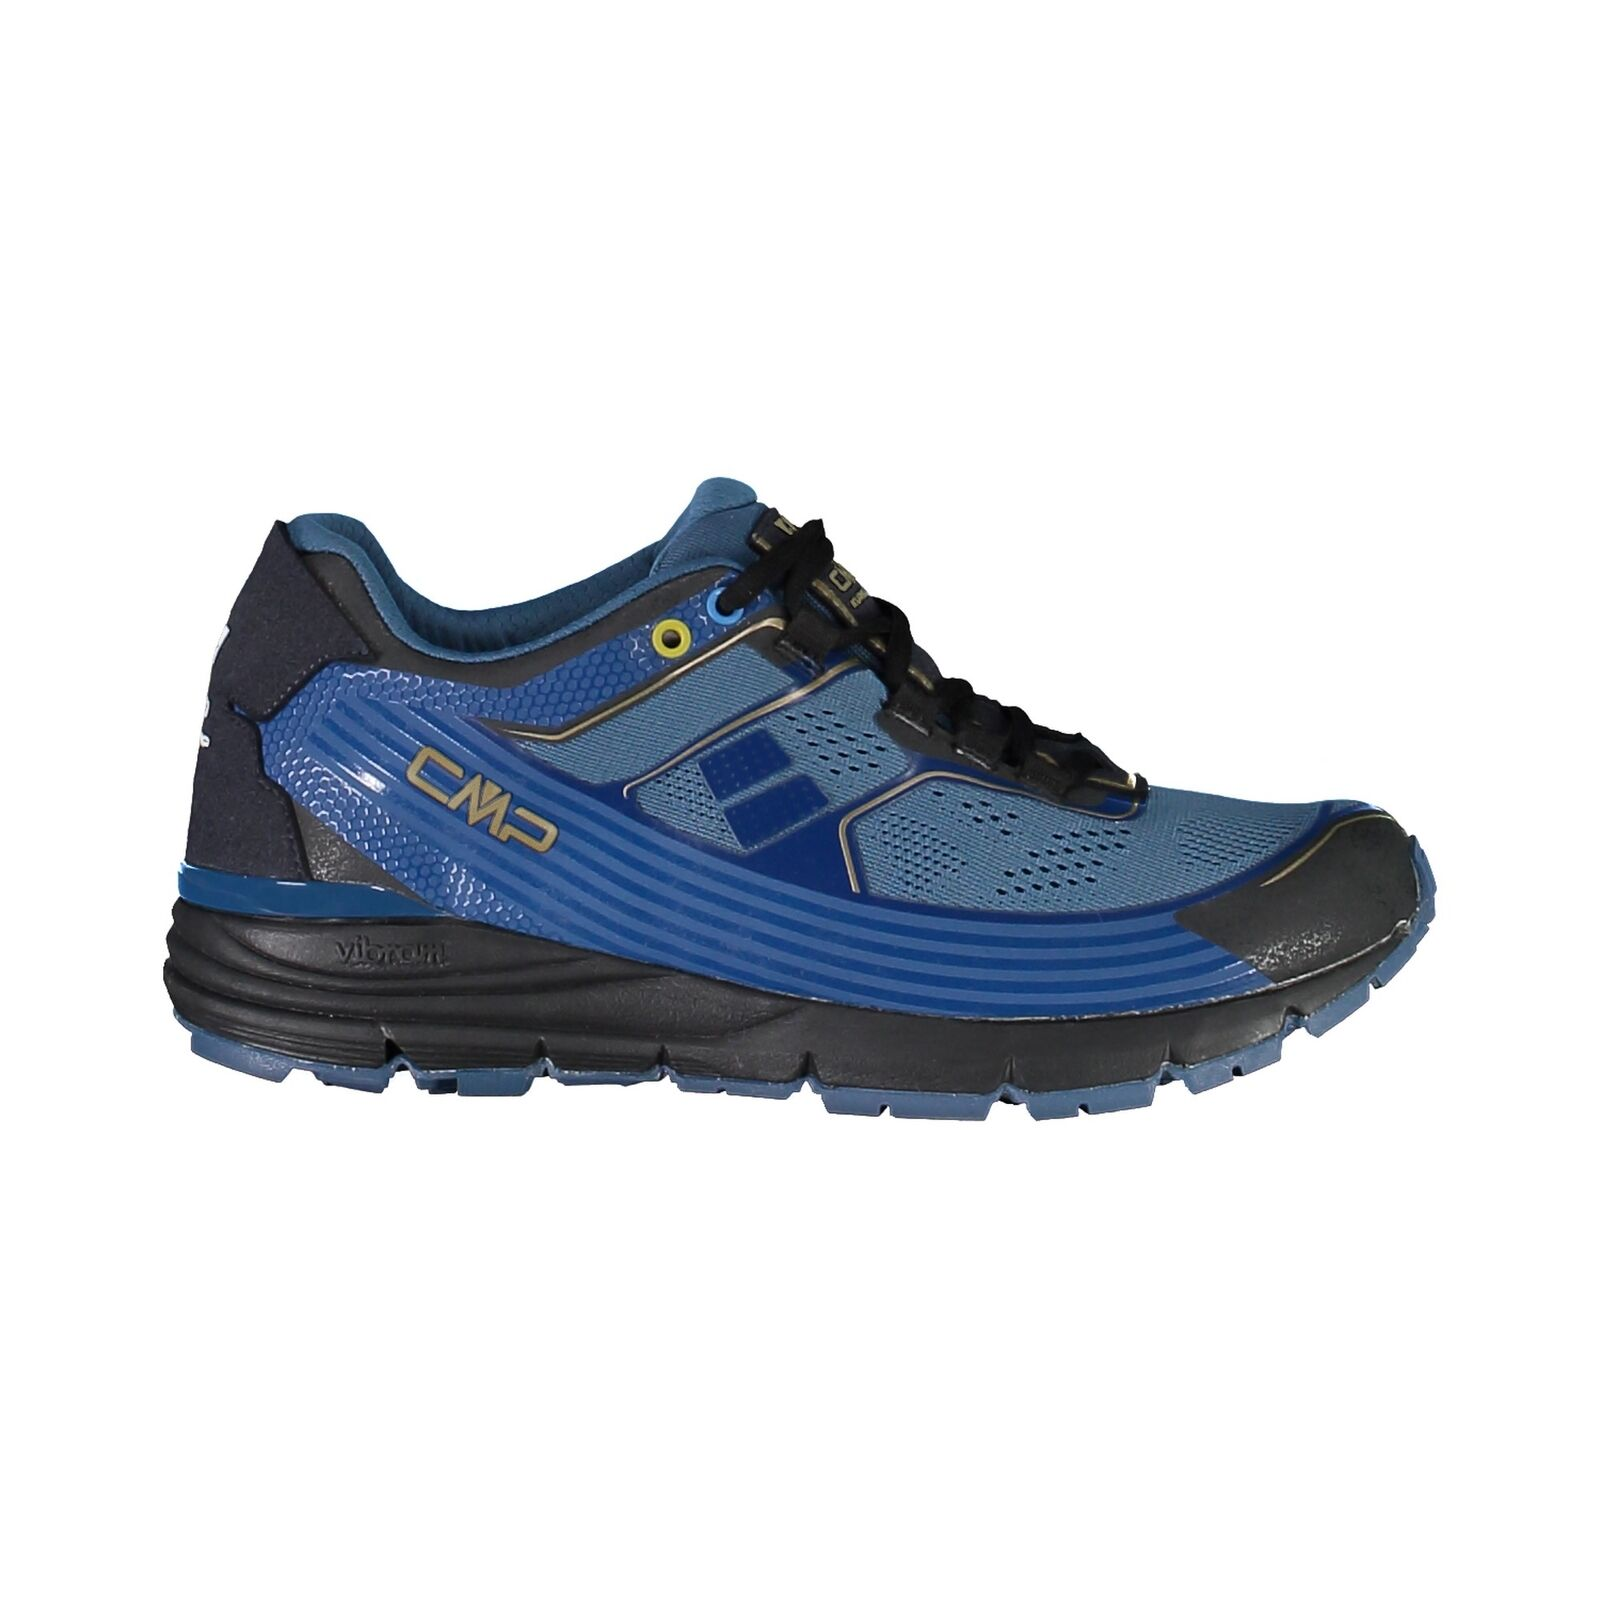 CMP Zapatillas Deportivas Correr Kursa Trail Wp bluee  Impermeable Malla  everyday low prices